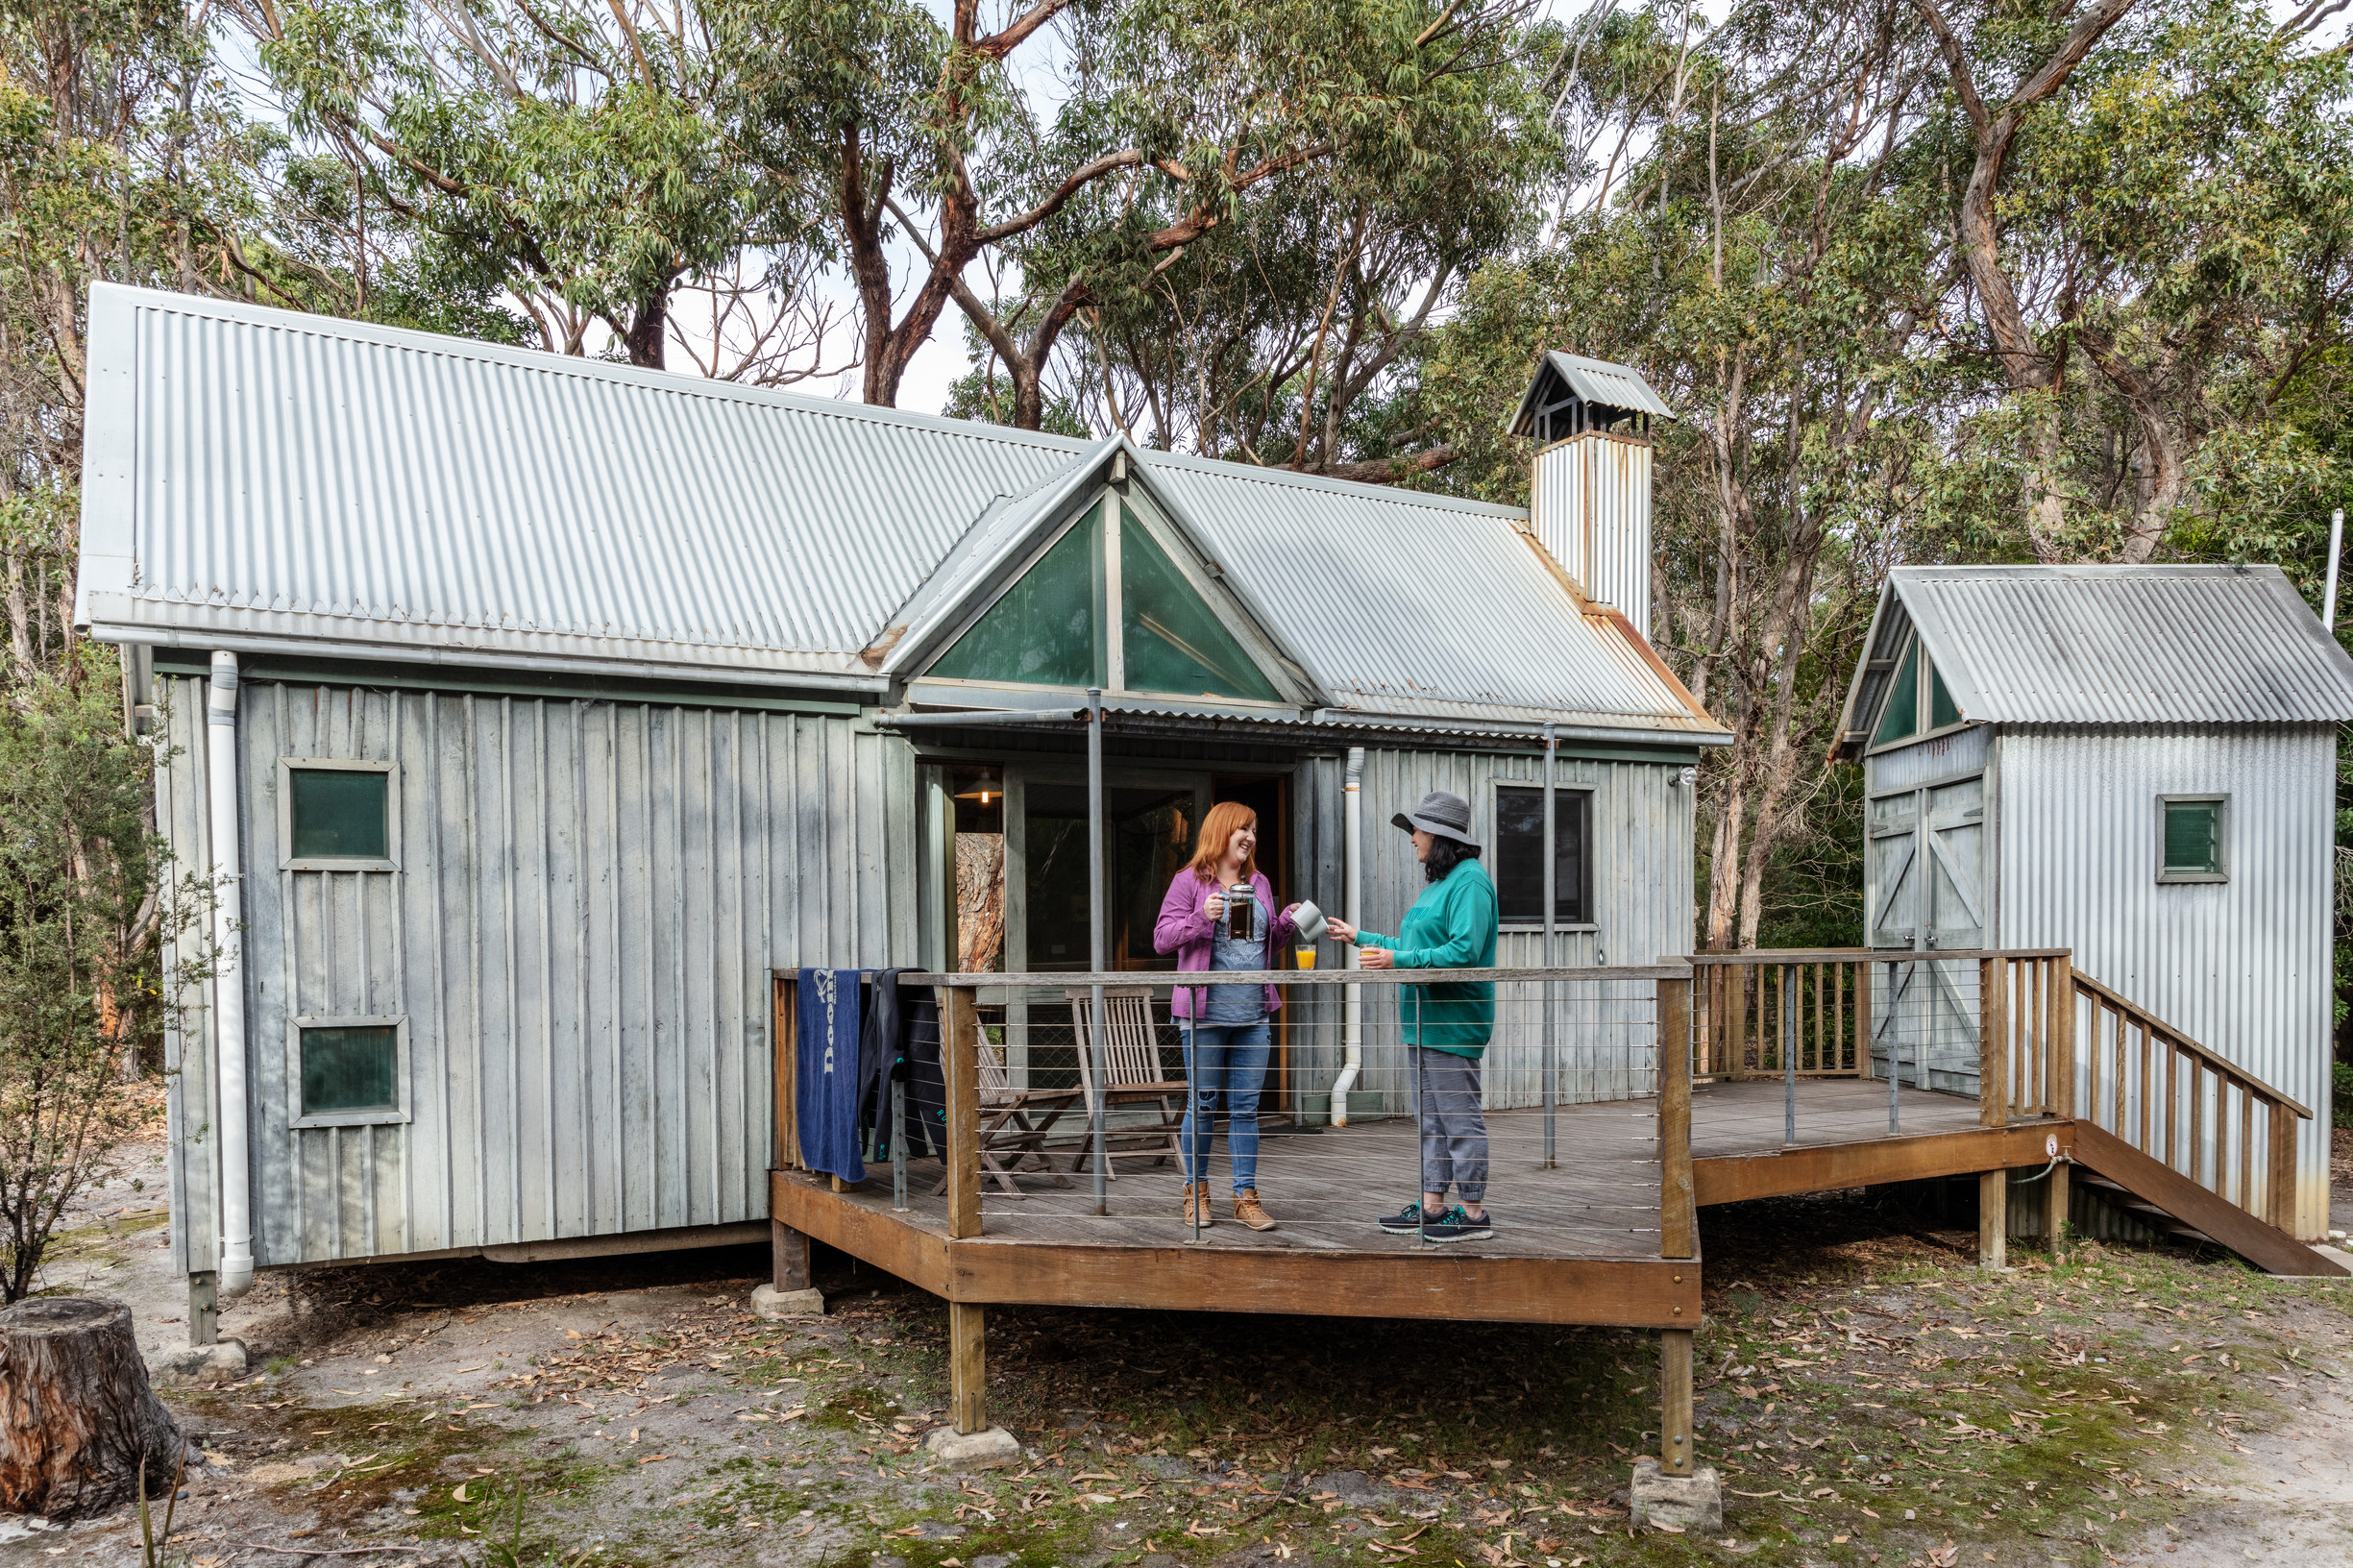 Image of previous cabins at Cape Conran that were burnt down in the 2019/20 fires